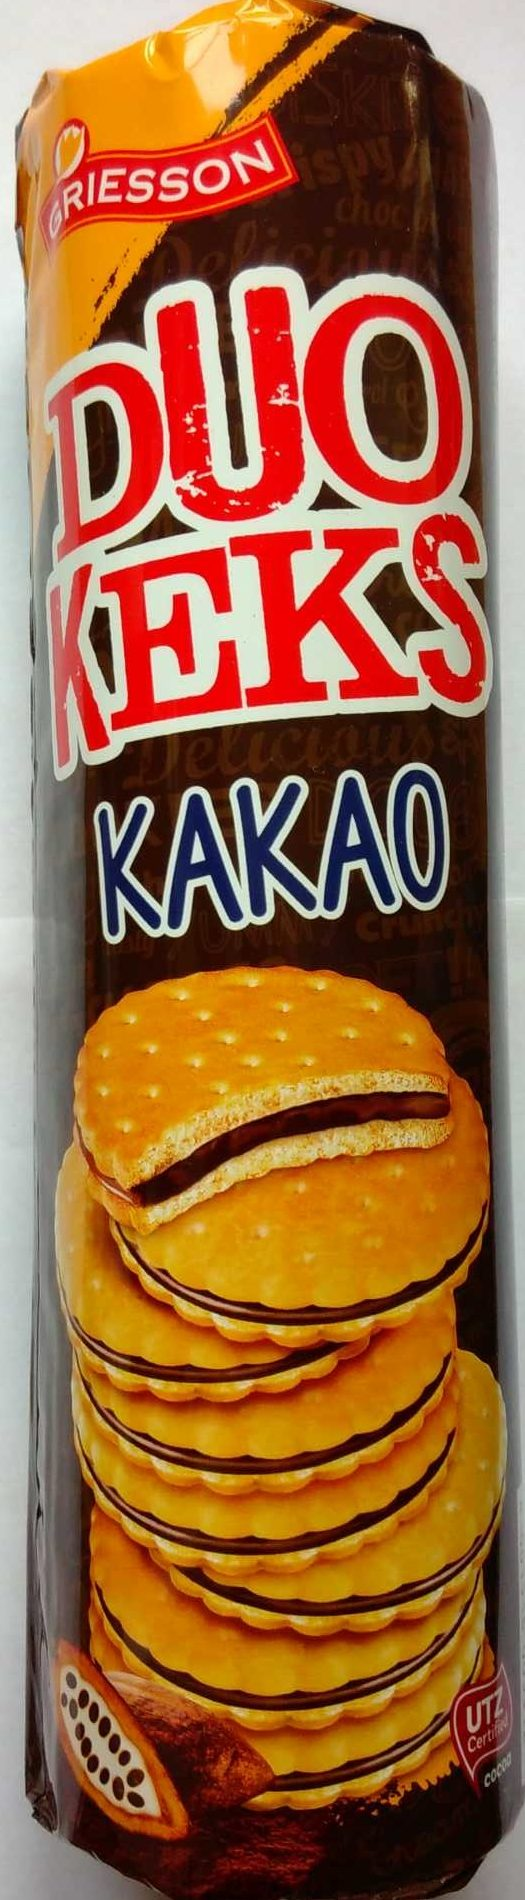 Duo Keks Kakao - Product - de